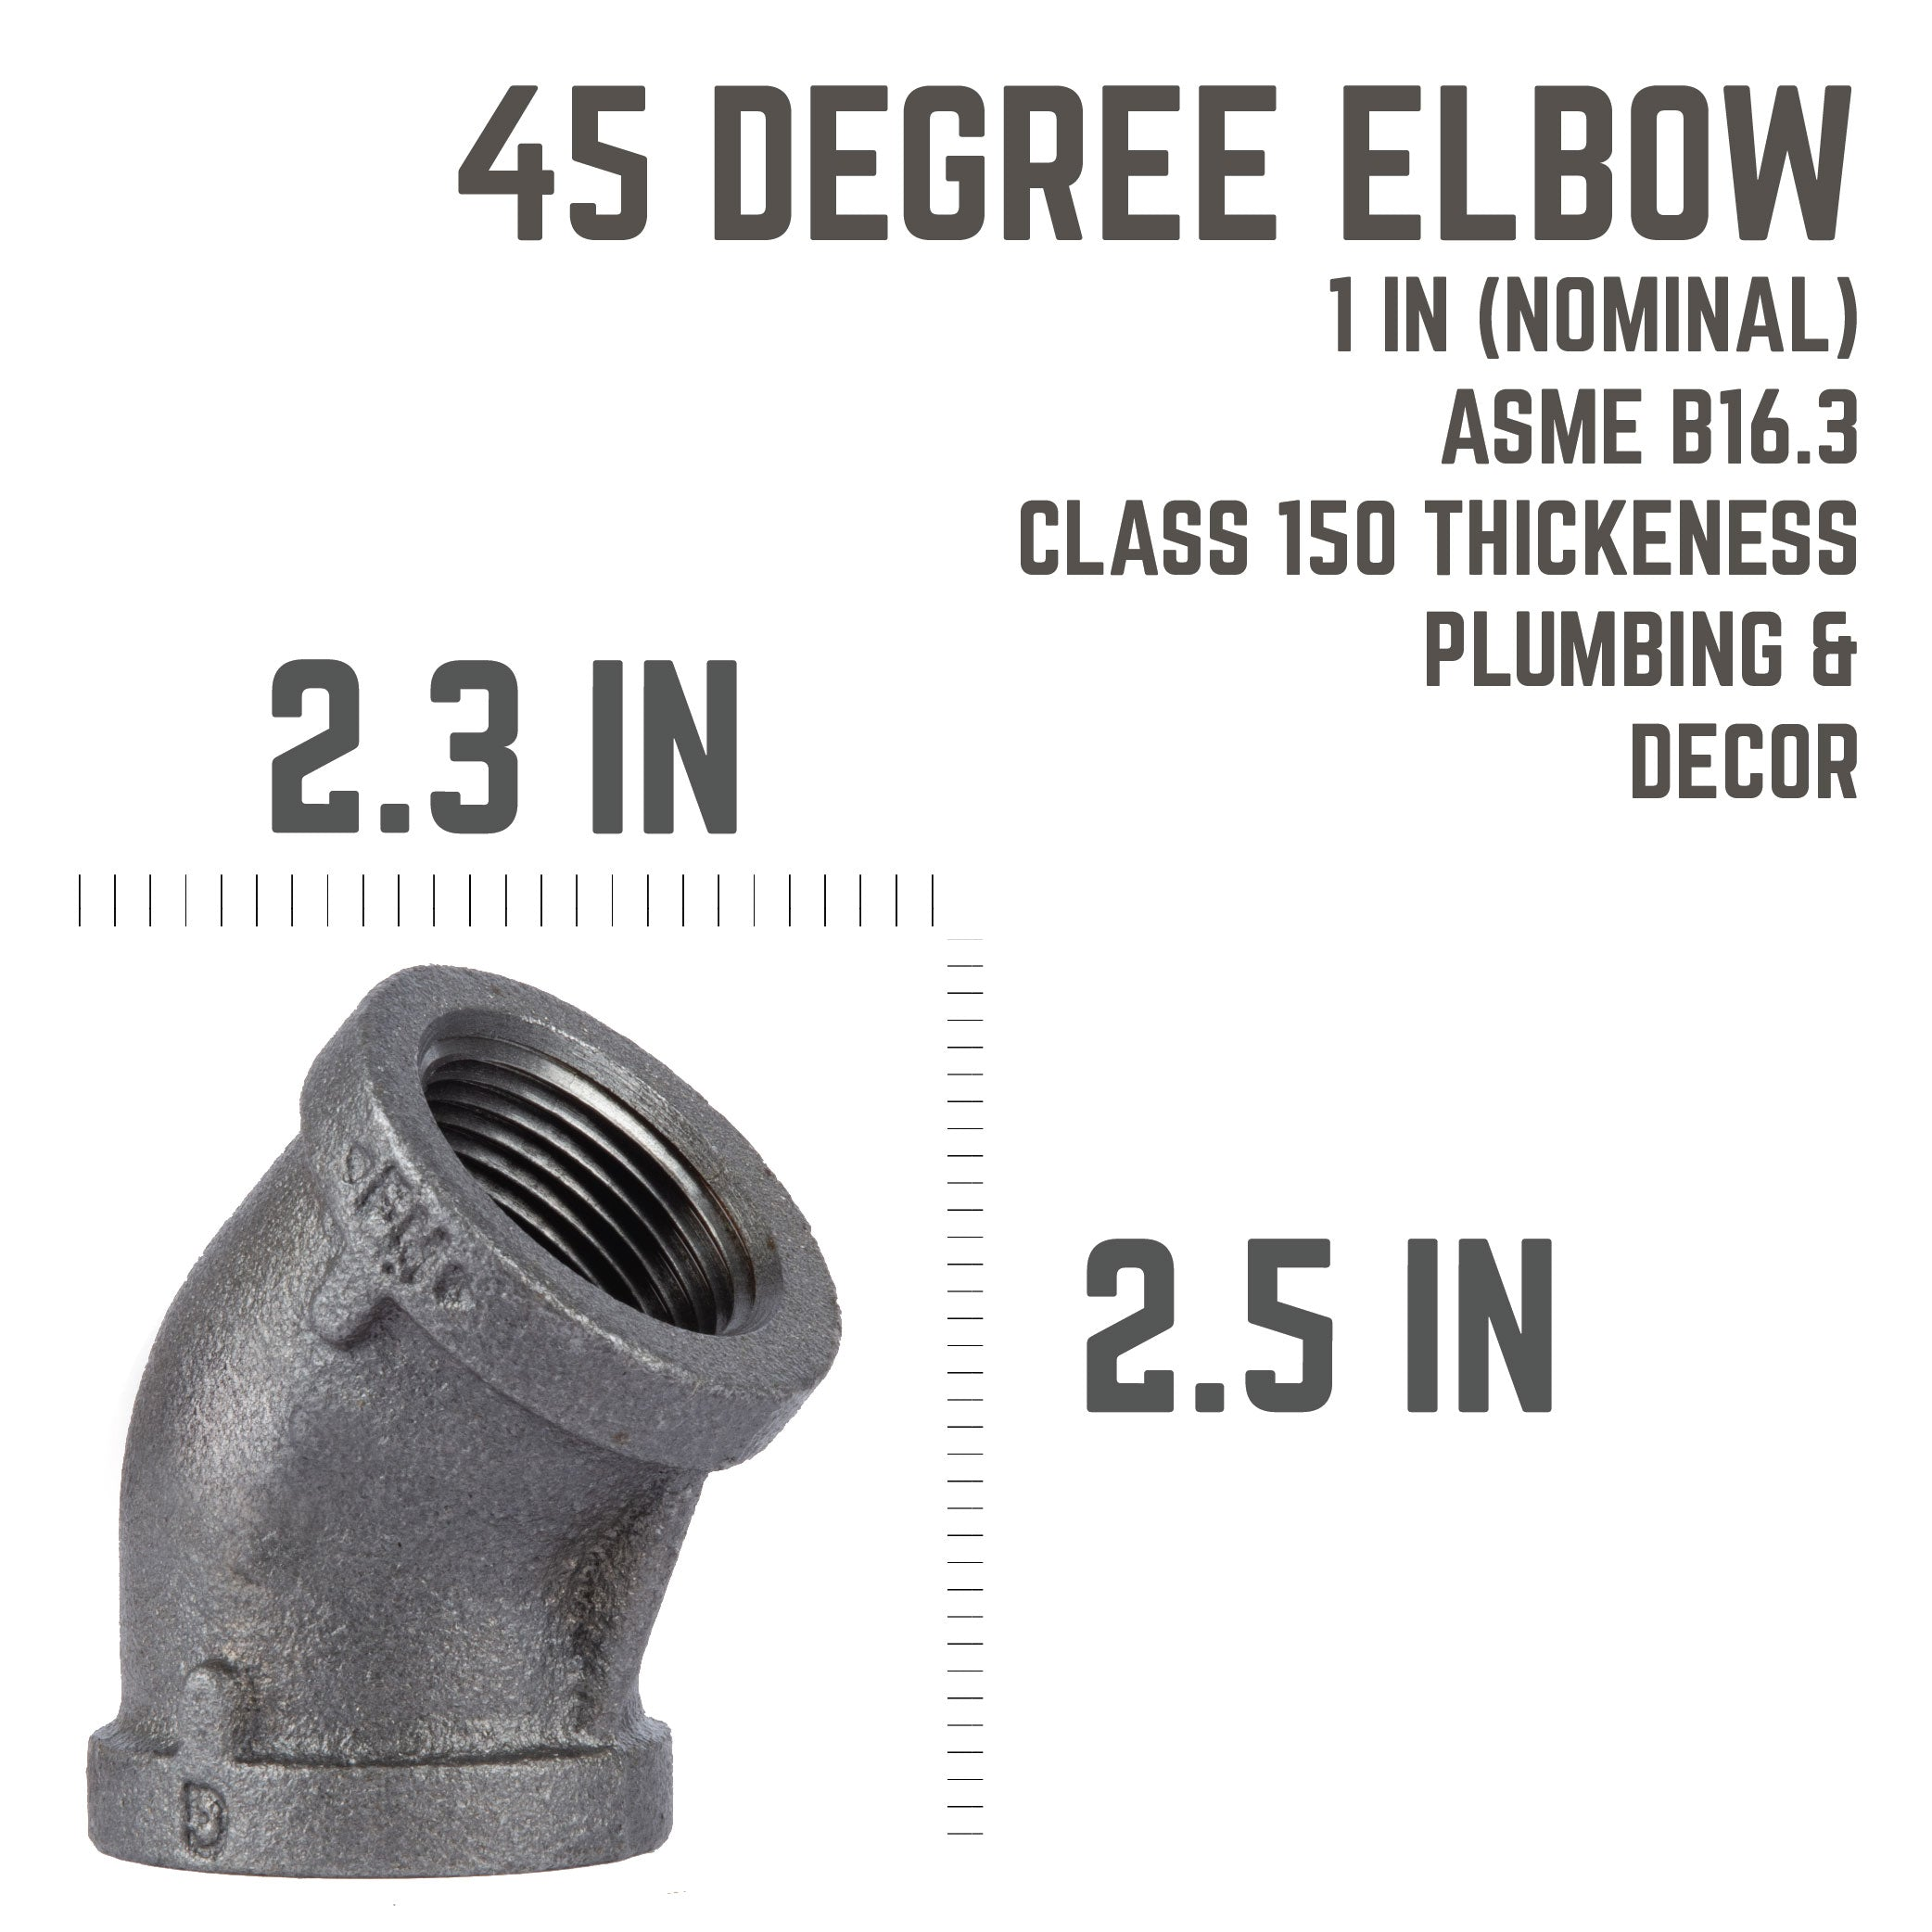 1 In Black 45 Elbow - Pipe Decor